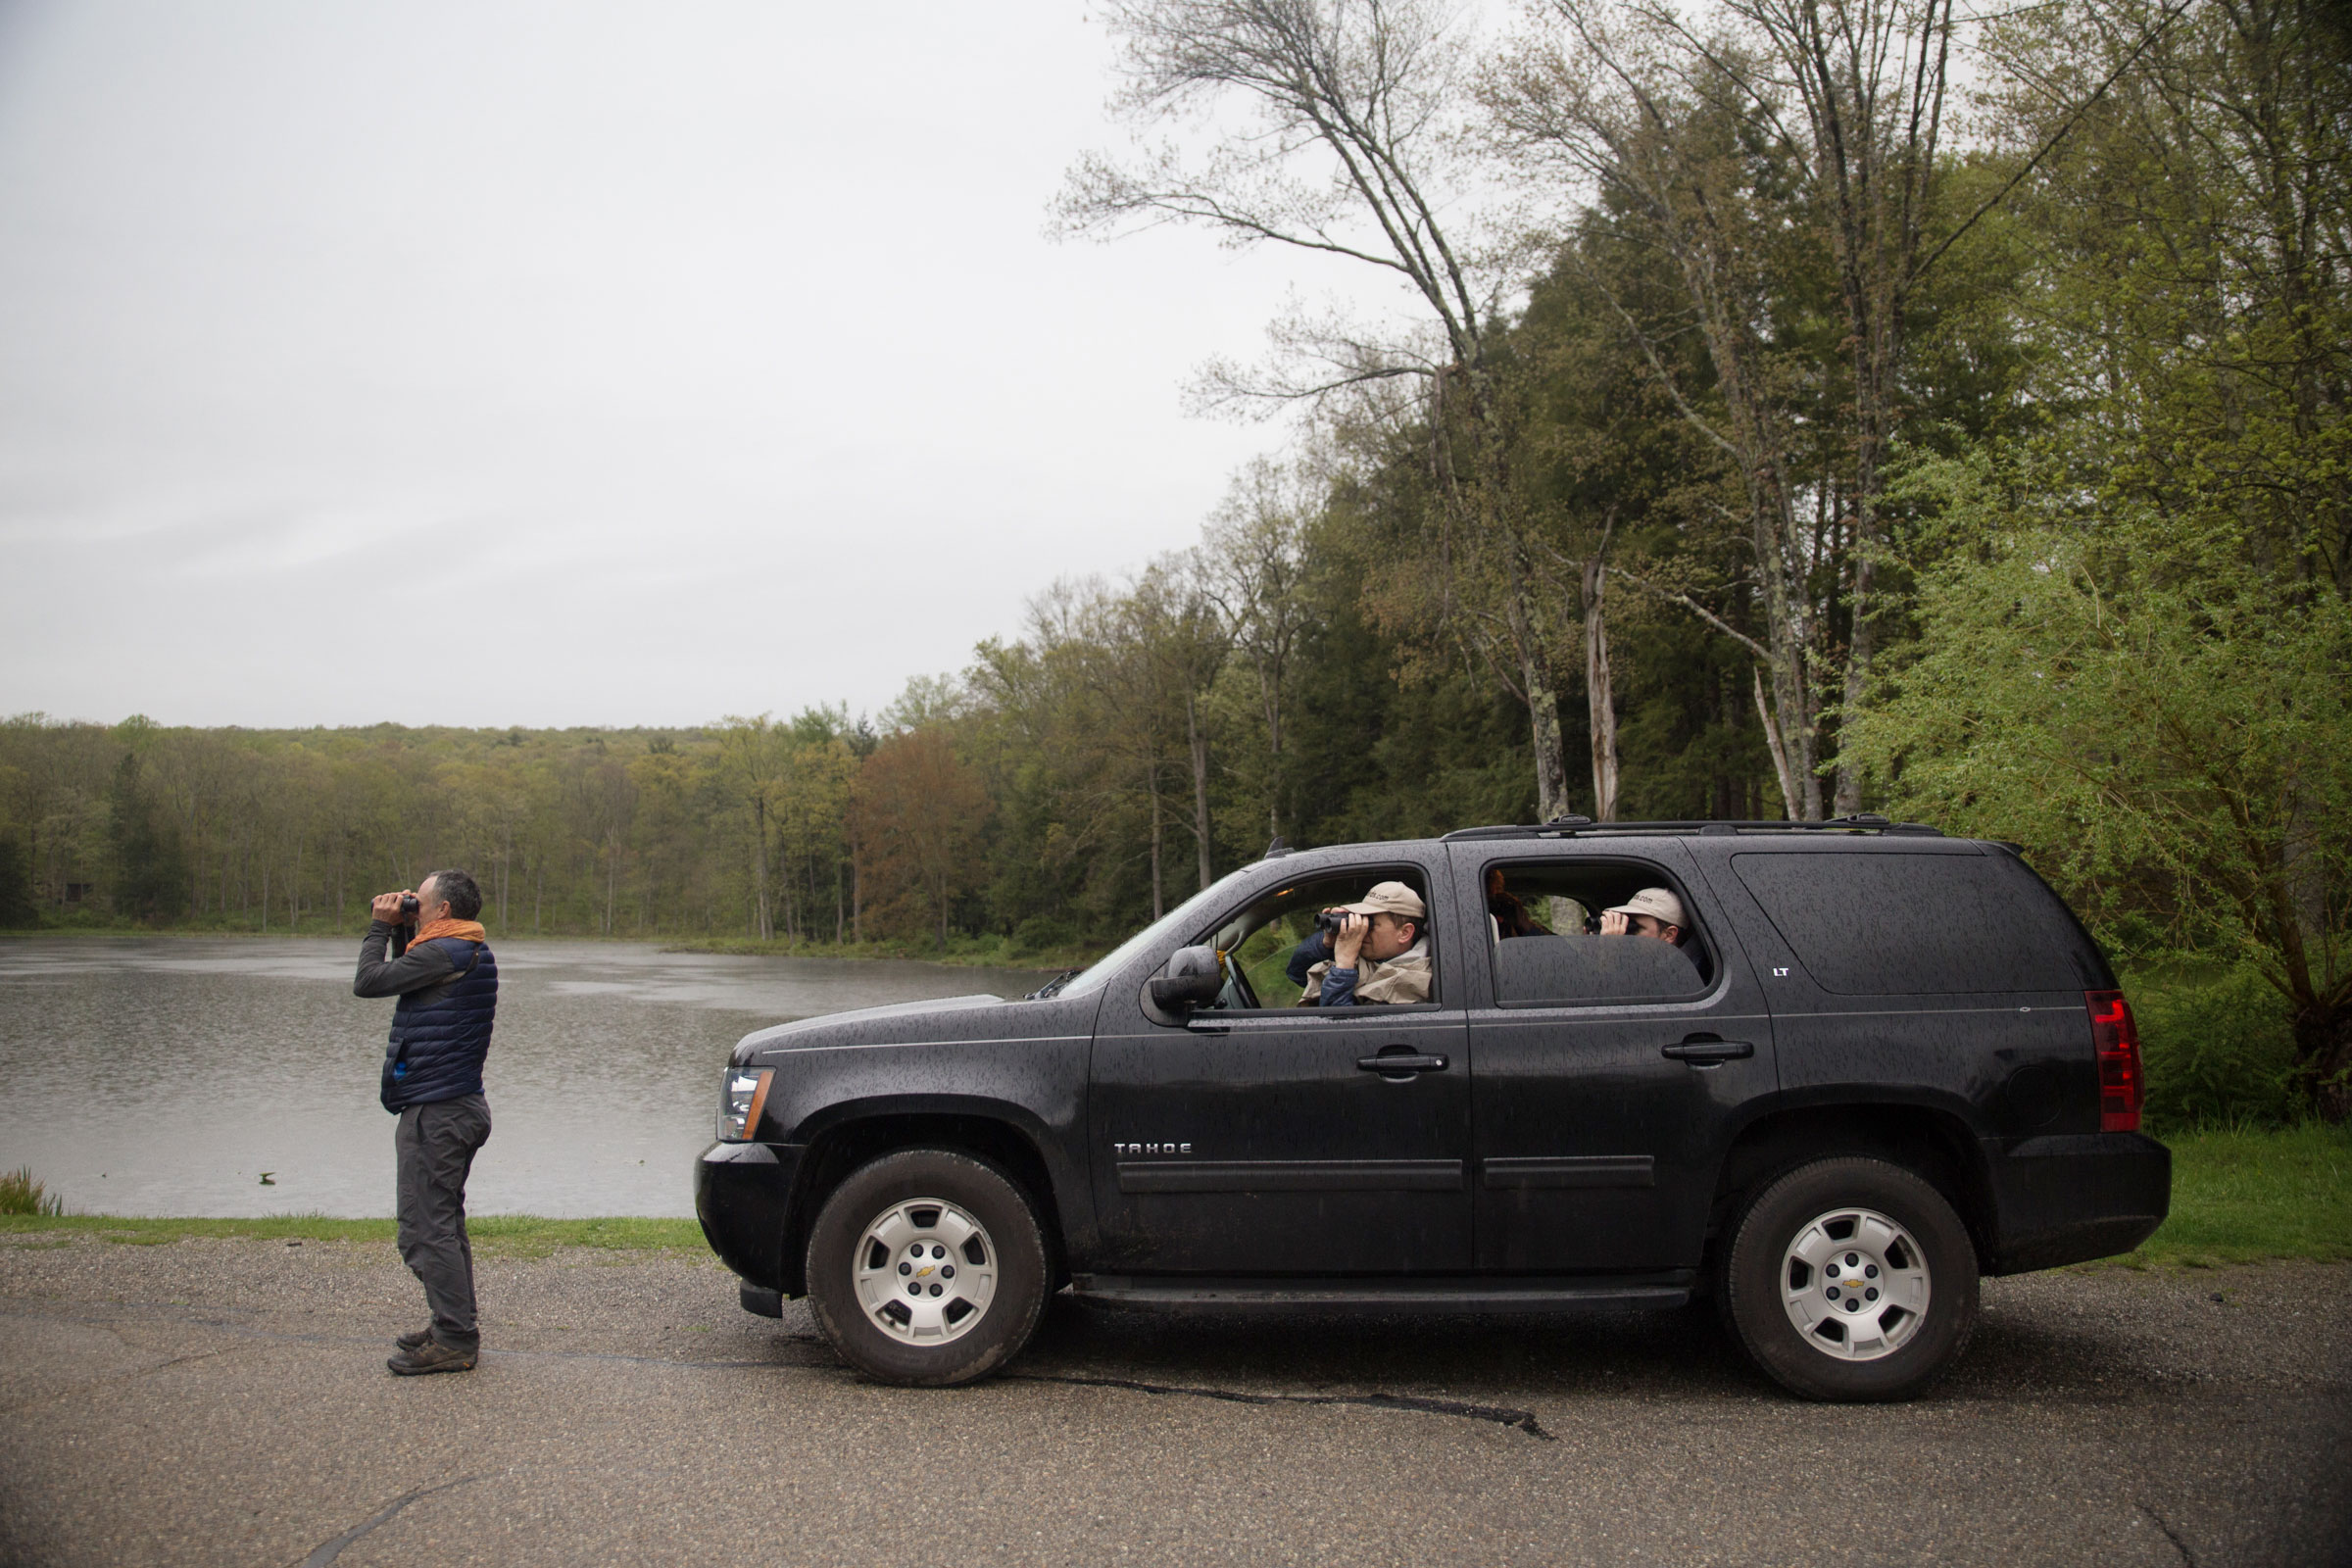 Ken Walsh of 1000birds tries to get a bead on a distant bird. Unless necessary, teams often try to get as many birds from the car as they can to save time. Camilla Cerea/Audubon